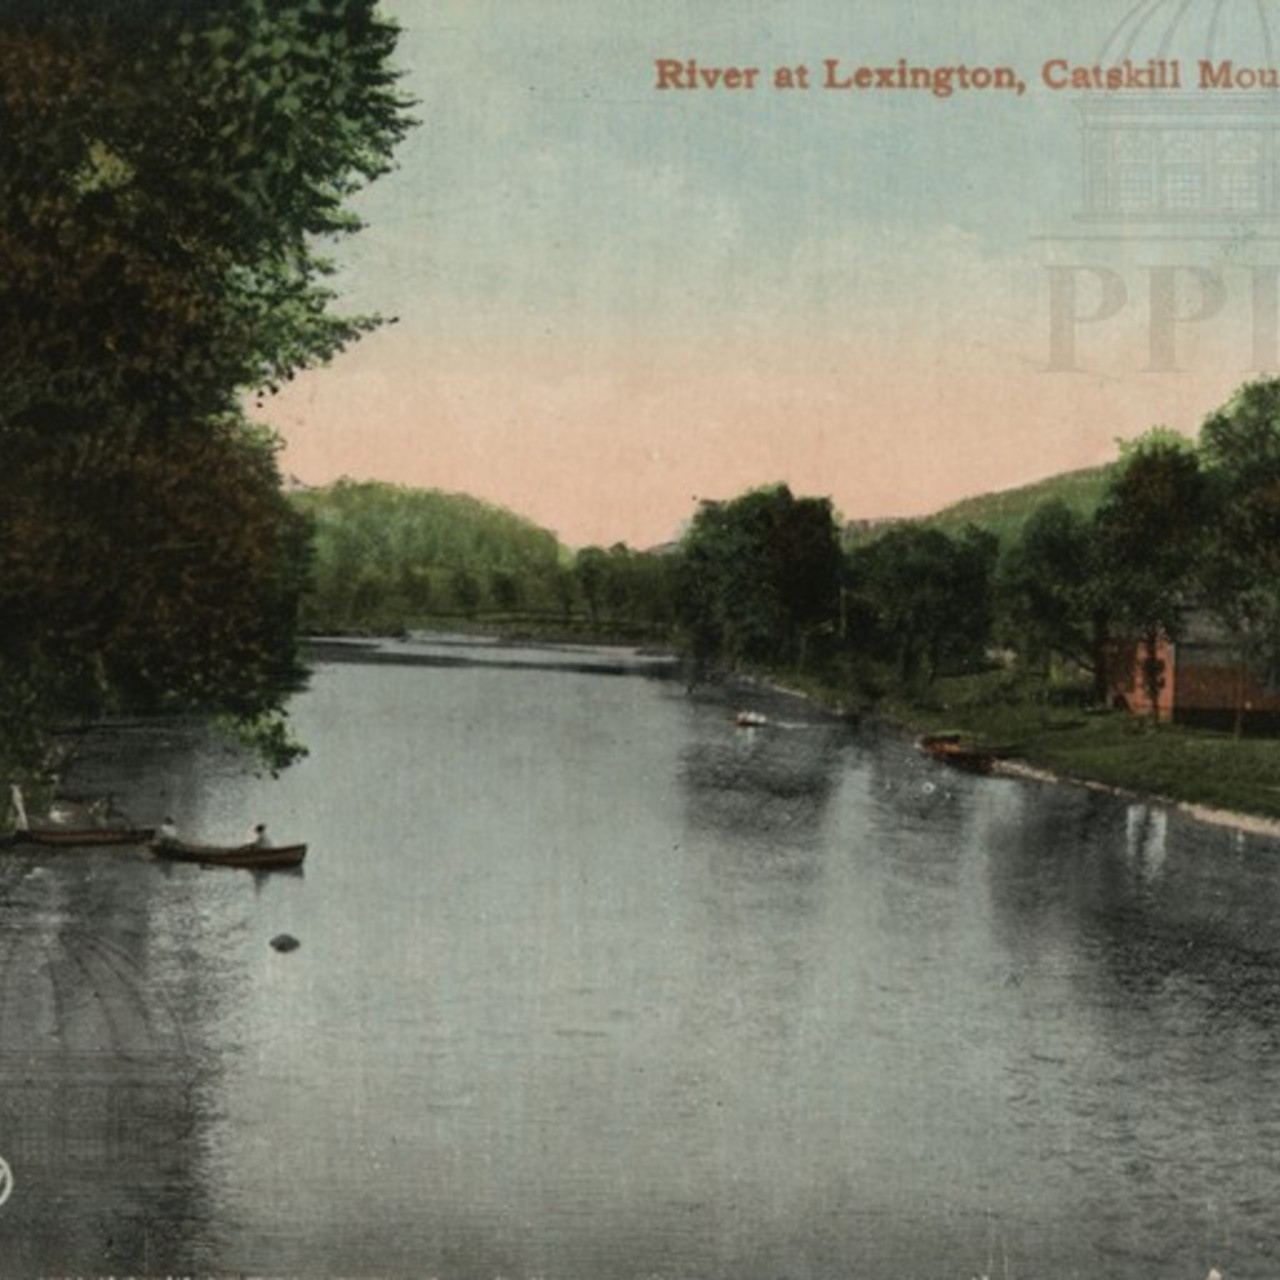 River at Lexington, Catskill Mountains